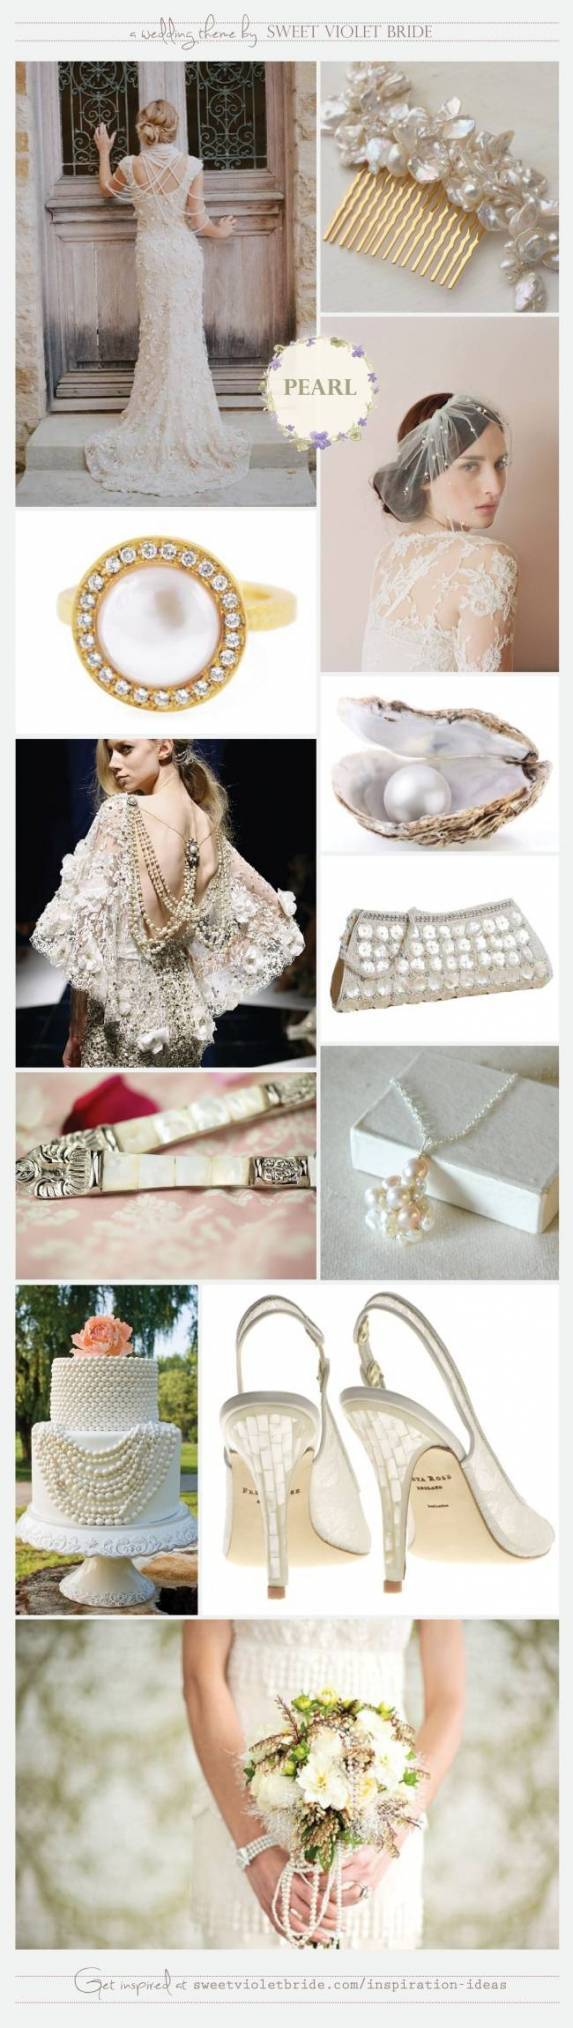 Wedding Inspiration Board #12: Pretty Pearls